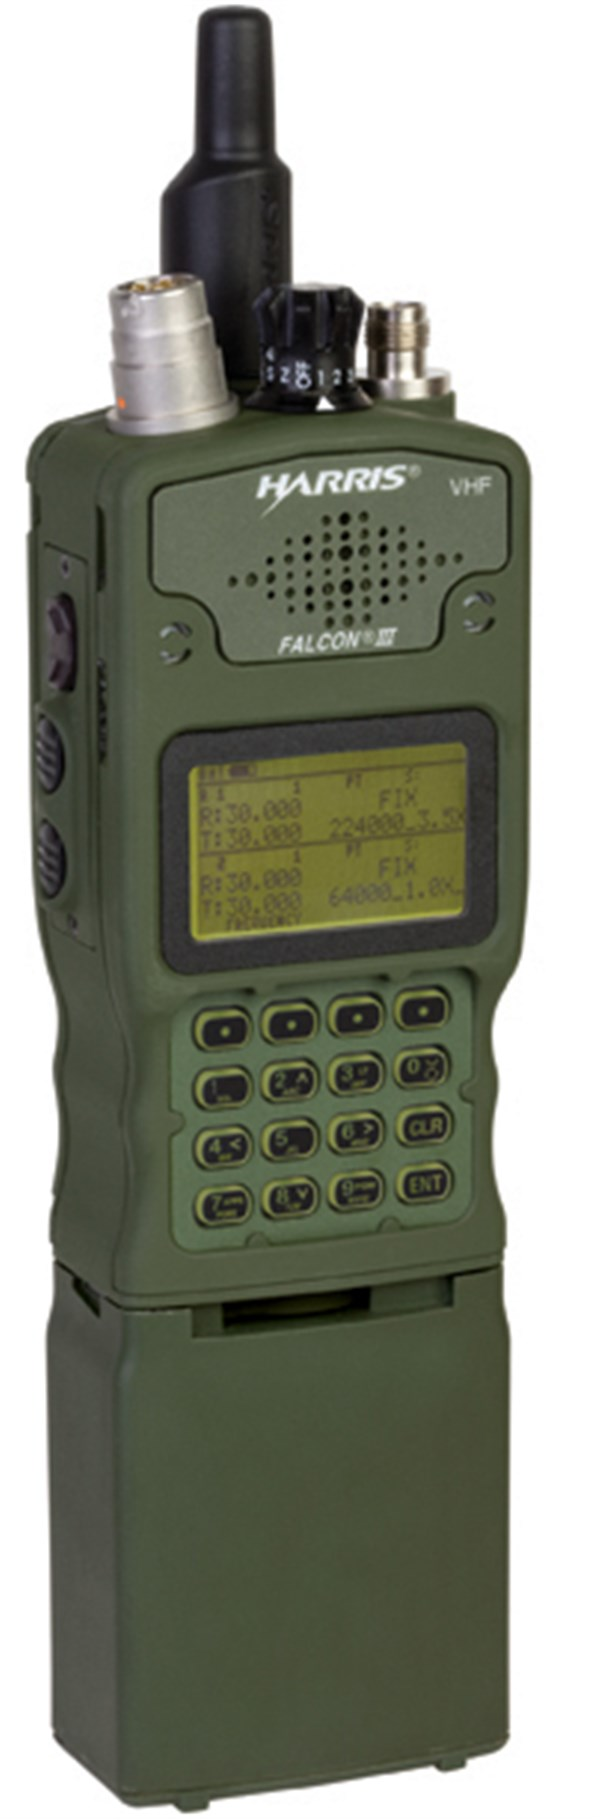 Harris to Deliver Falcon III Wideband Radio Systems for C4IS